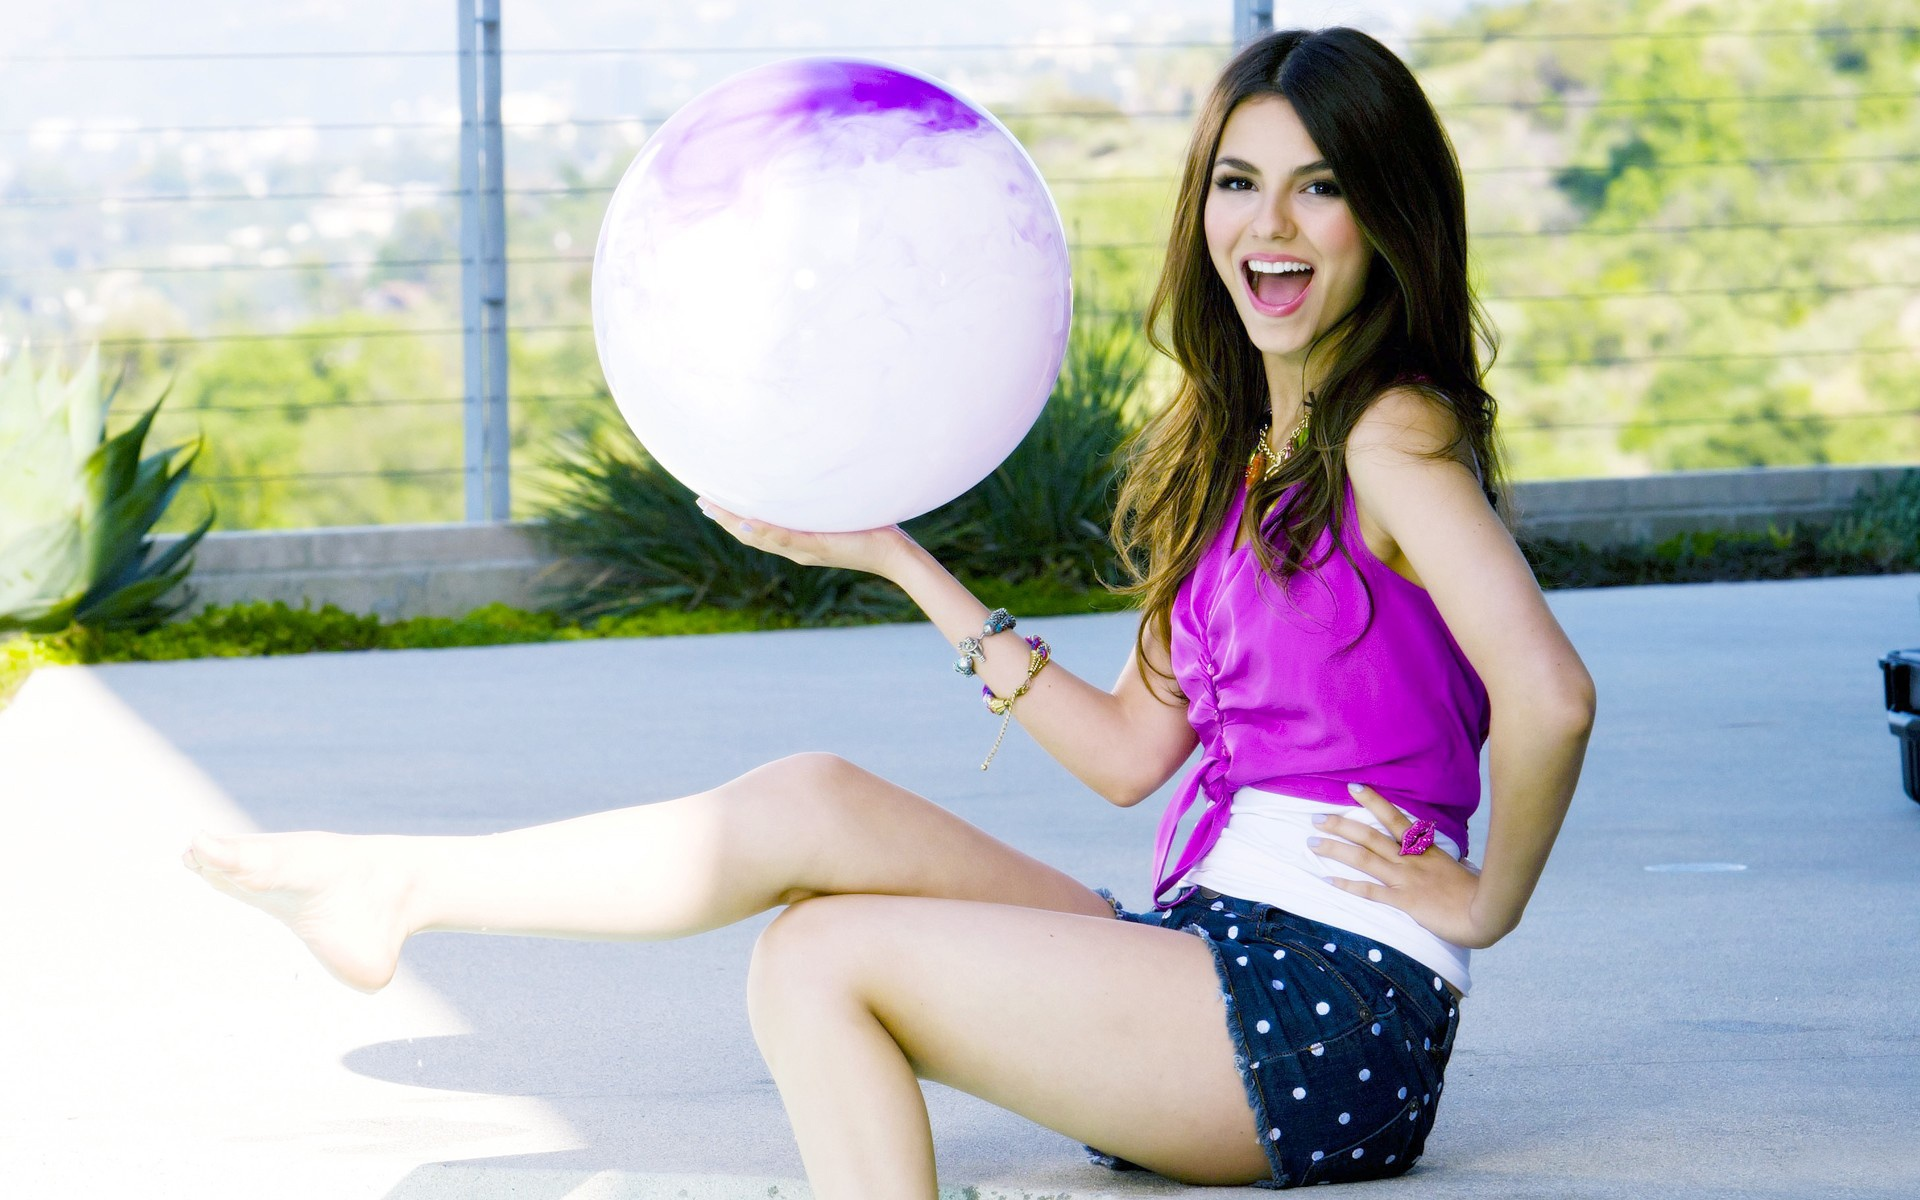 victoria justice wallpapers hd A2